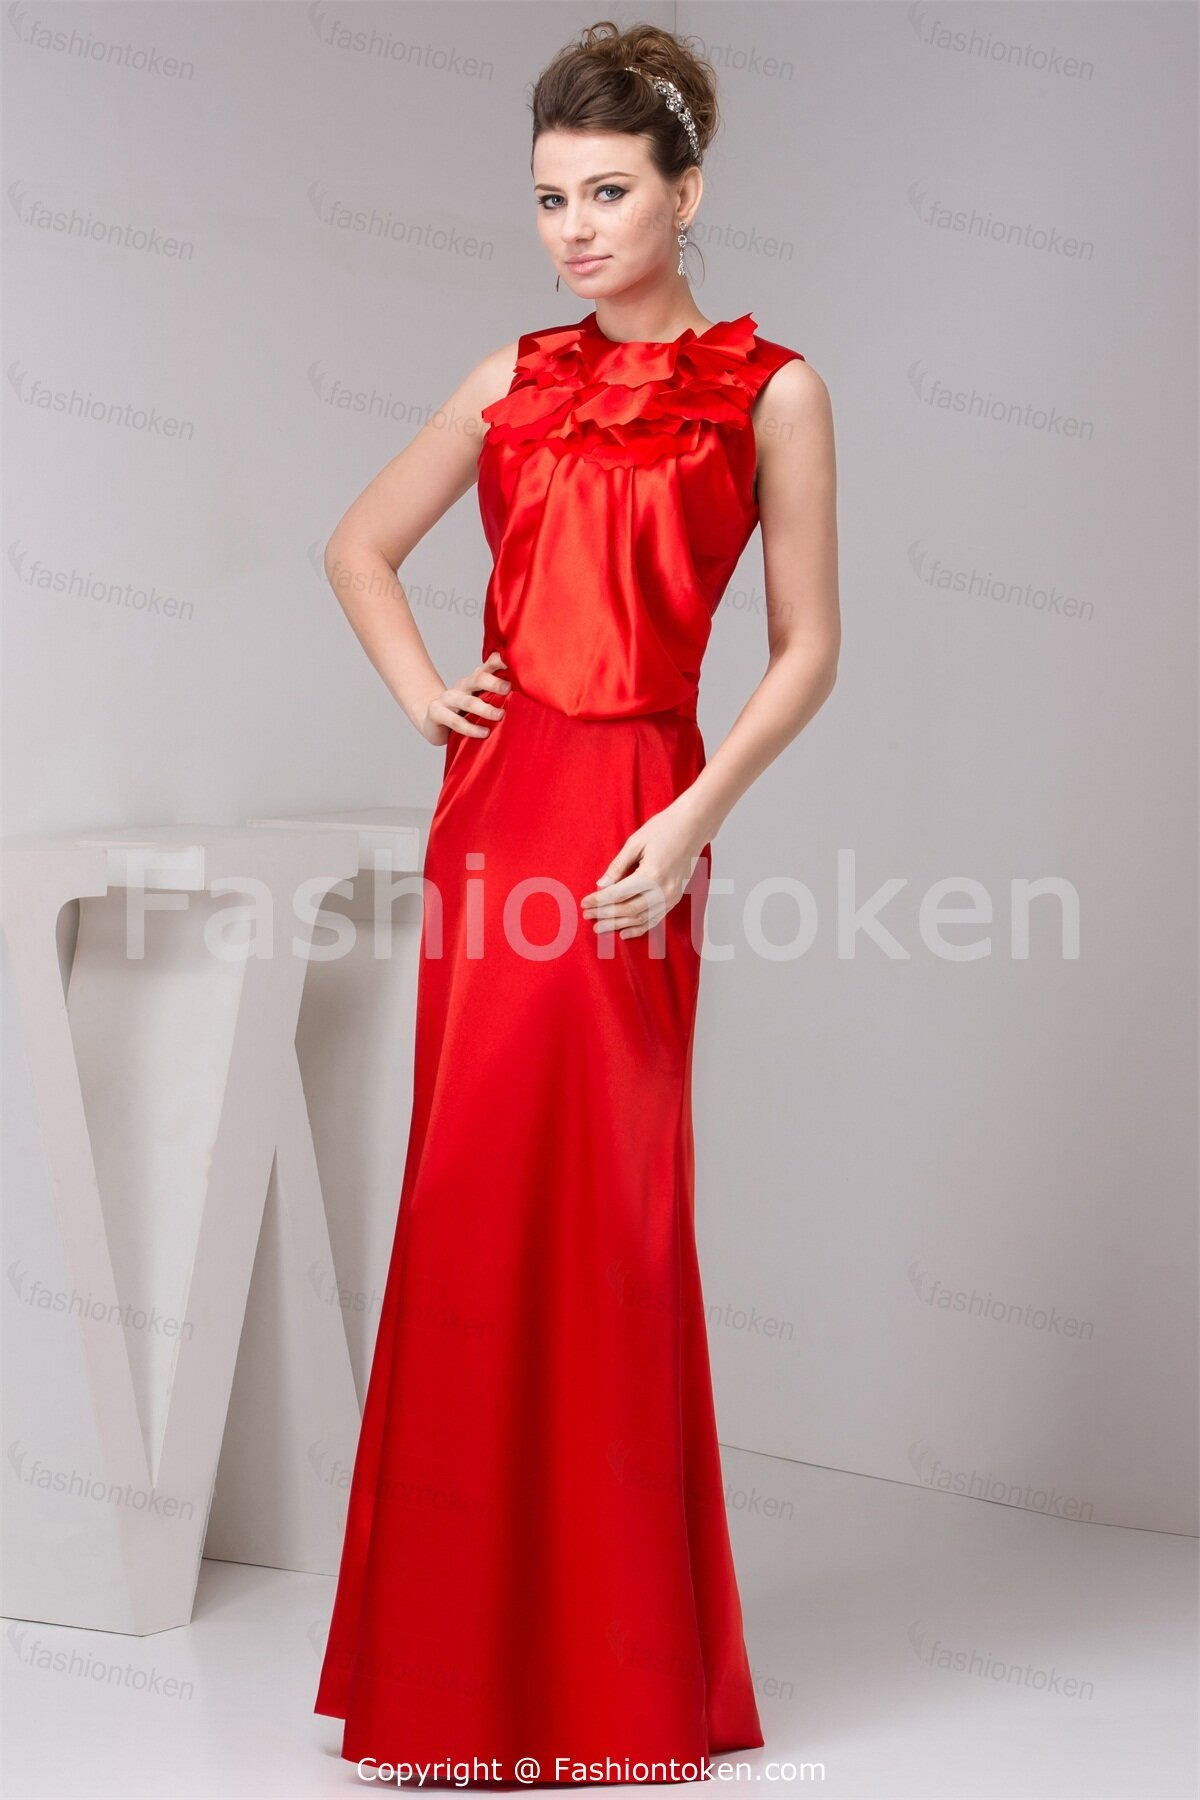 Spring wedding guest dresses Photo - 6